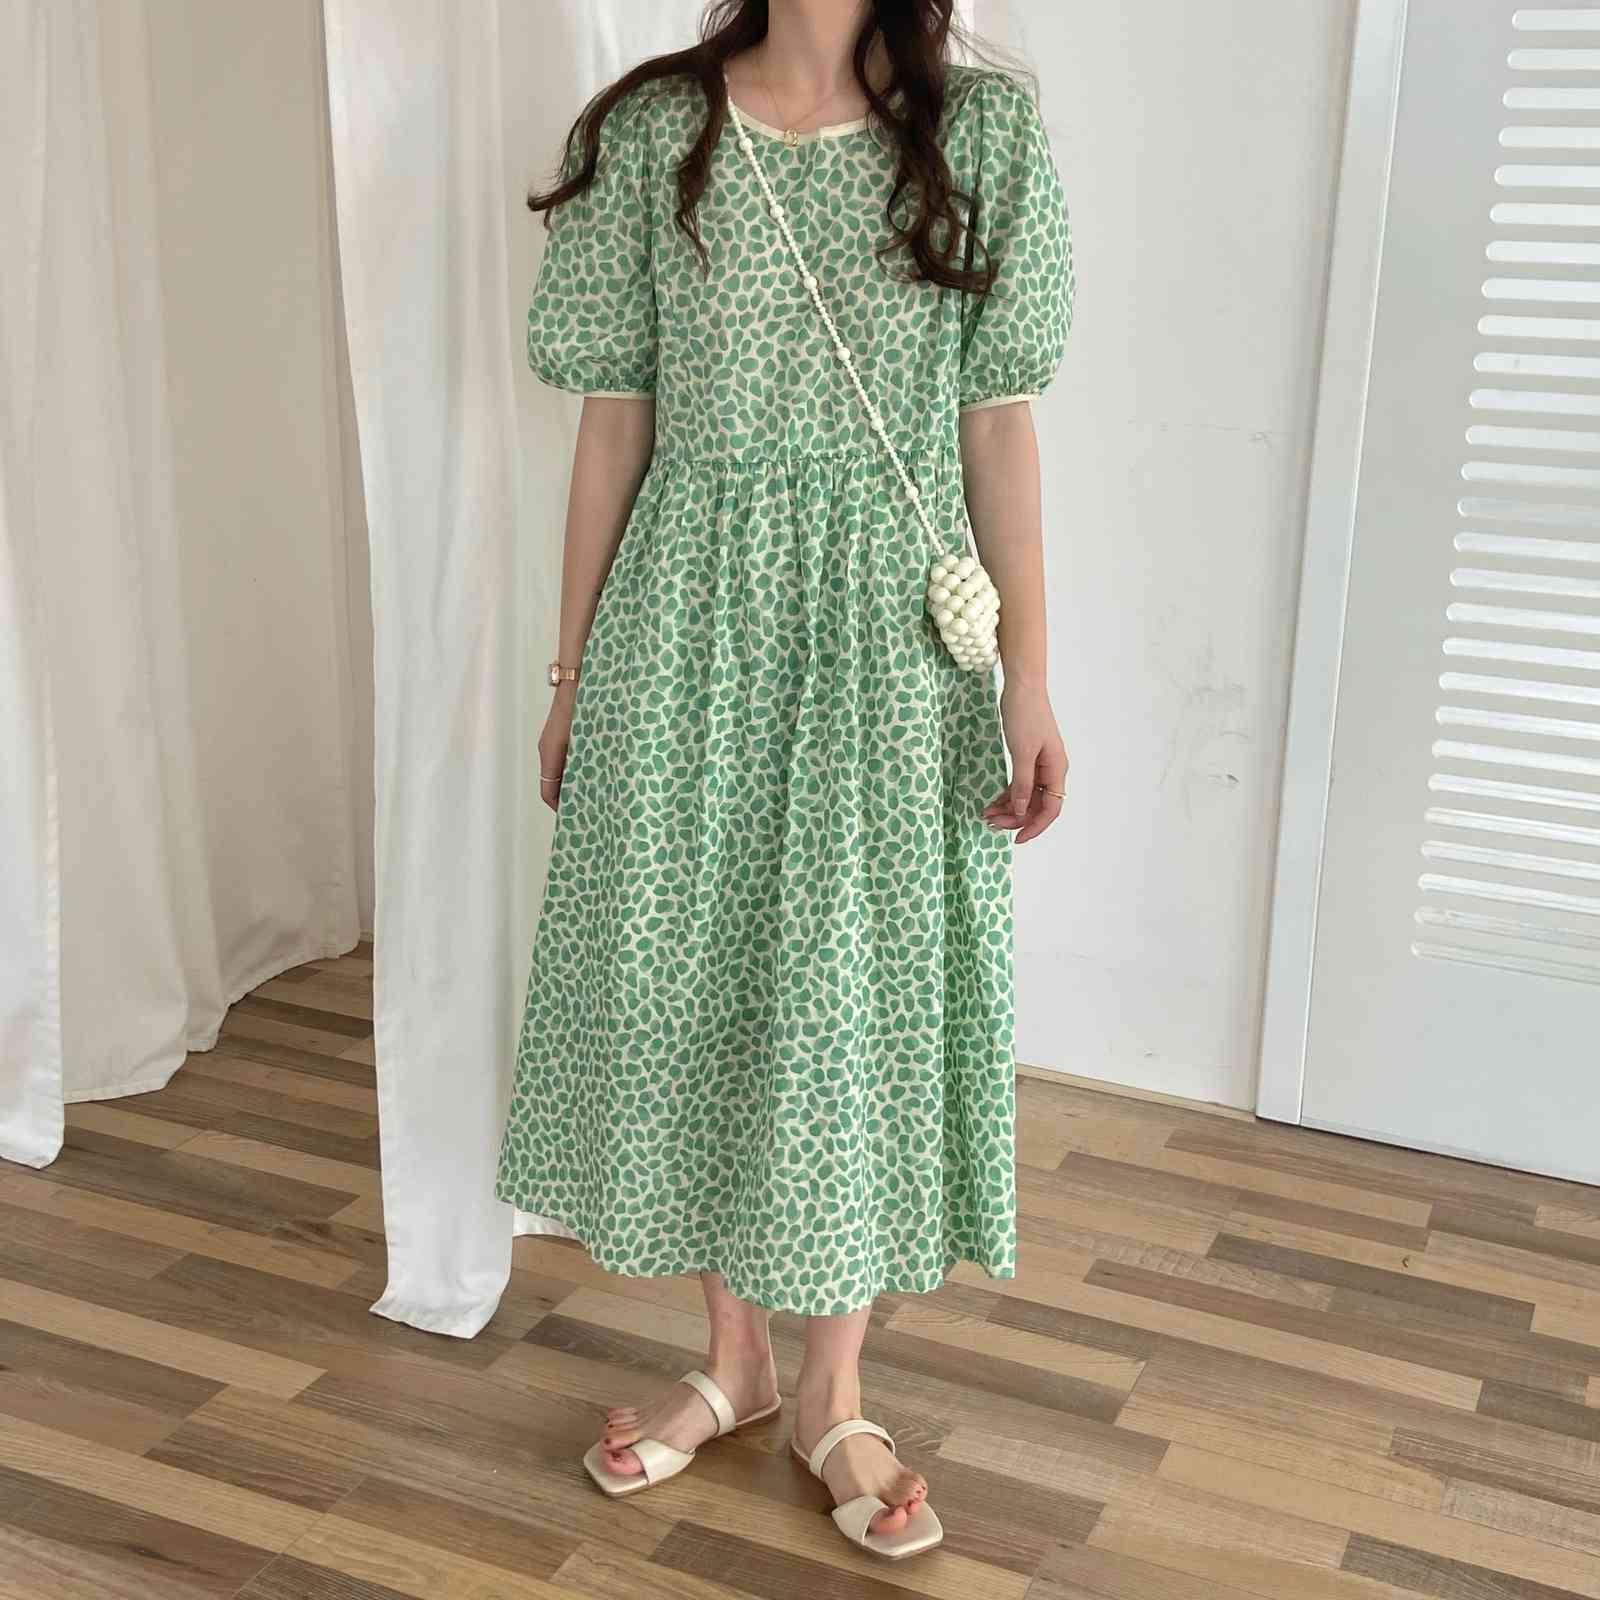 Summer Brief Sweet Polka Dot Chic Party Slim Long Dresses Office Lady French Floral Elegant Stylish 210514